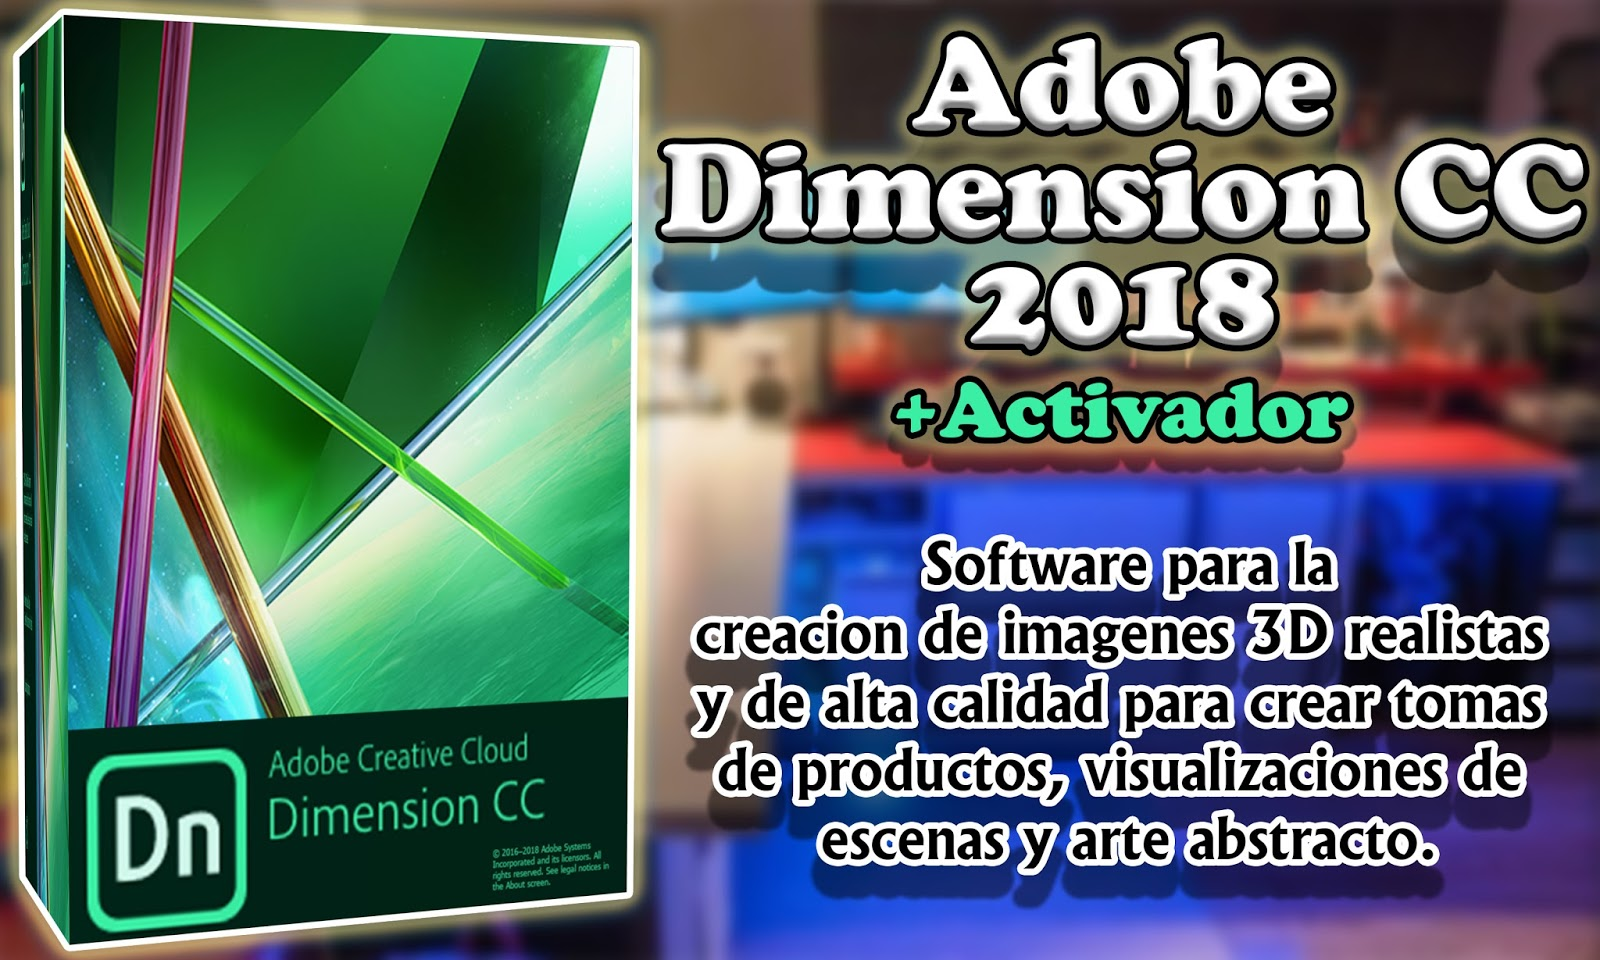 Adobe Dimension Cc 2018 Download Free Crack For Mac